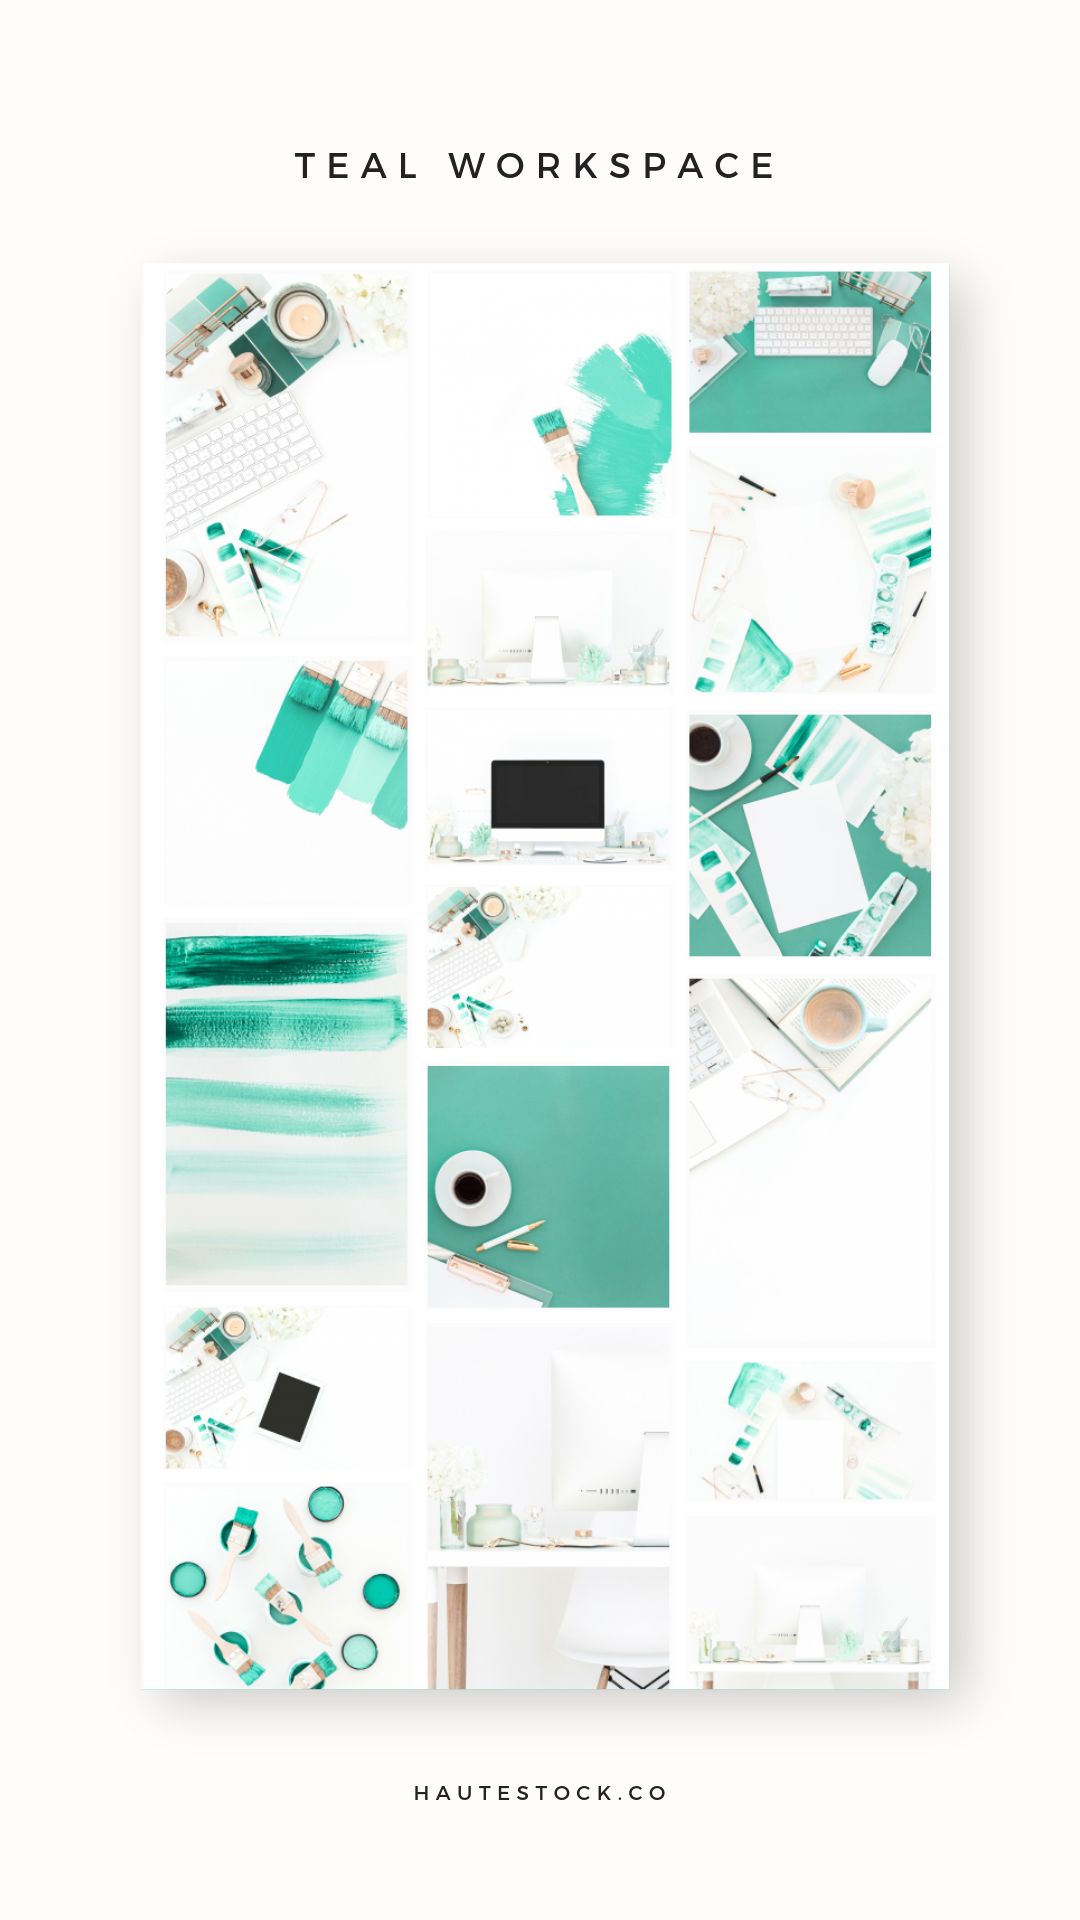 Haute Stock's Teal Workspace styled stock photo collection is perfect for brands that need feminine styled images that are beautiful and high-quality.